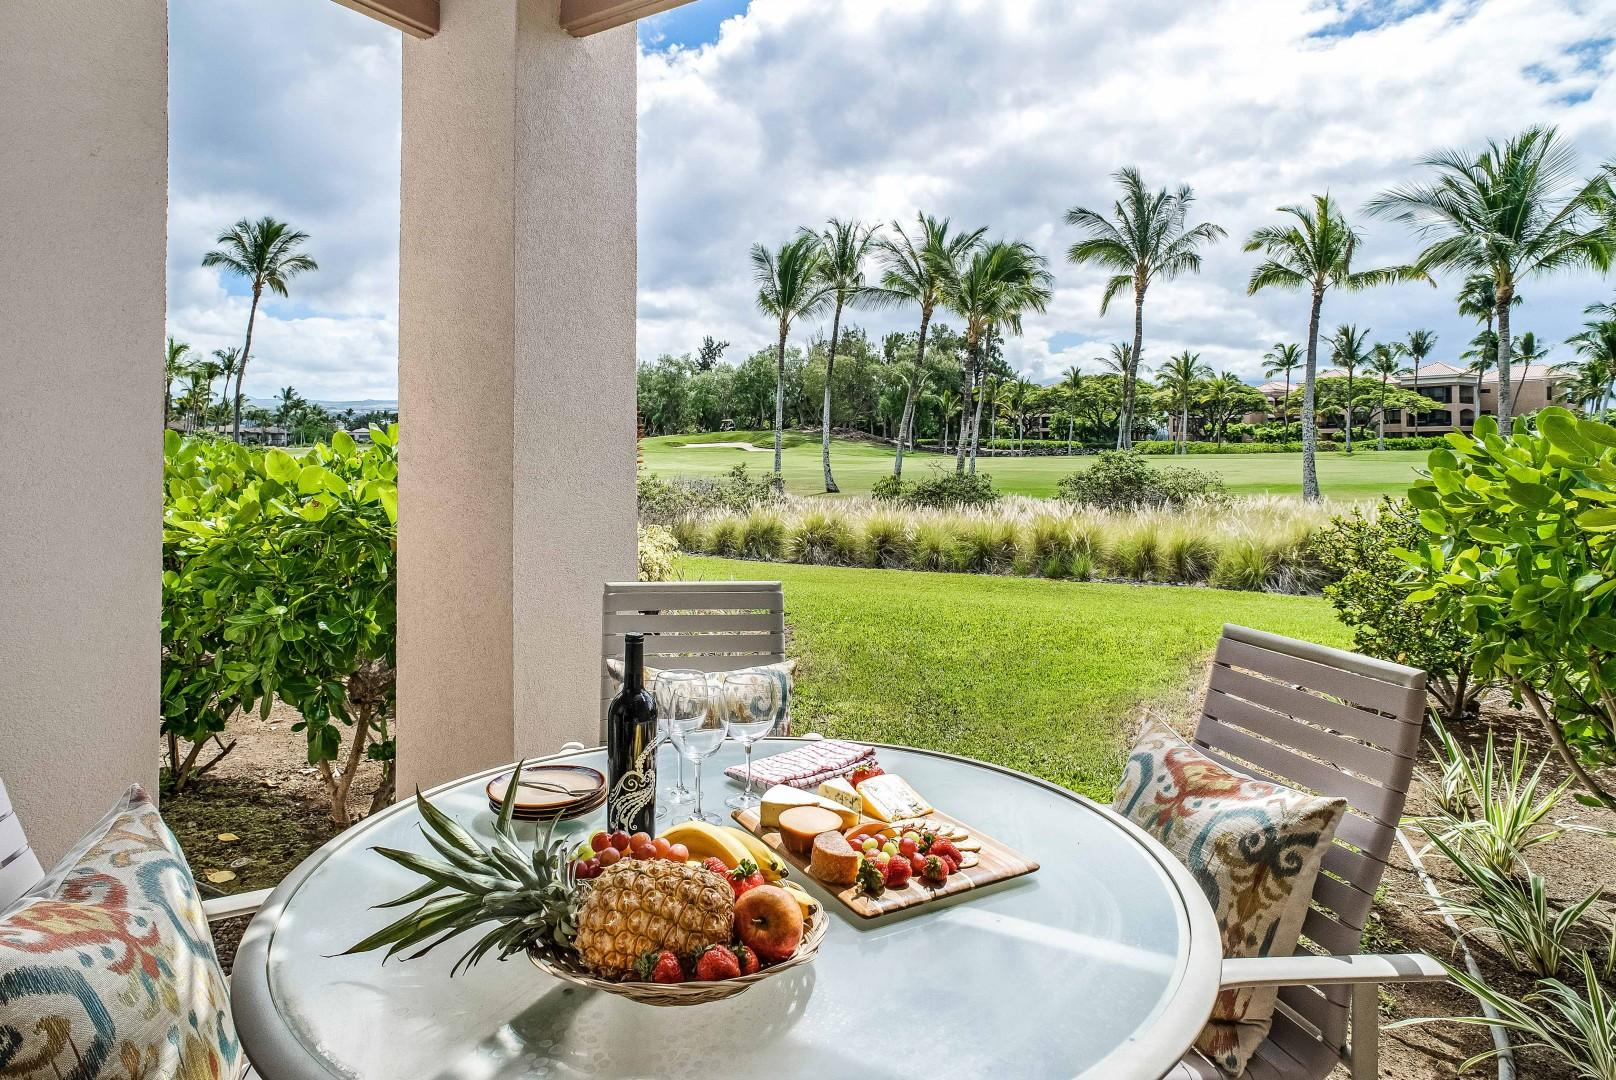 Additional Dining in Private Patio Outside Dining Room w/ View of Golf Course and Palm Trees